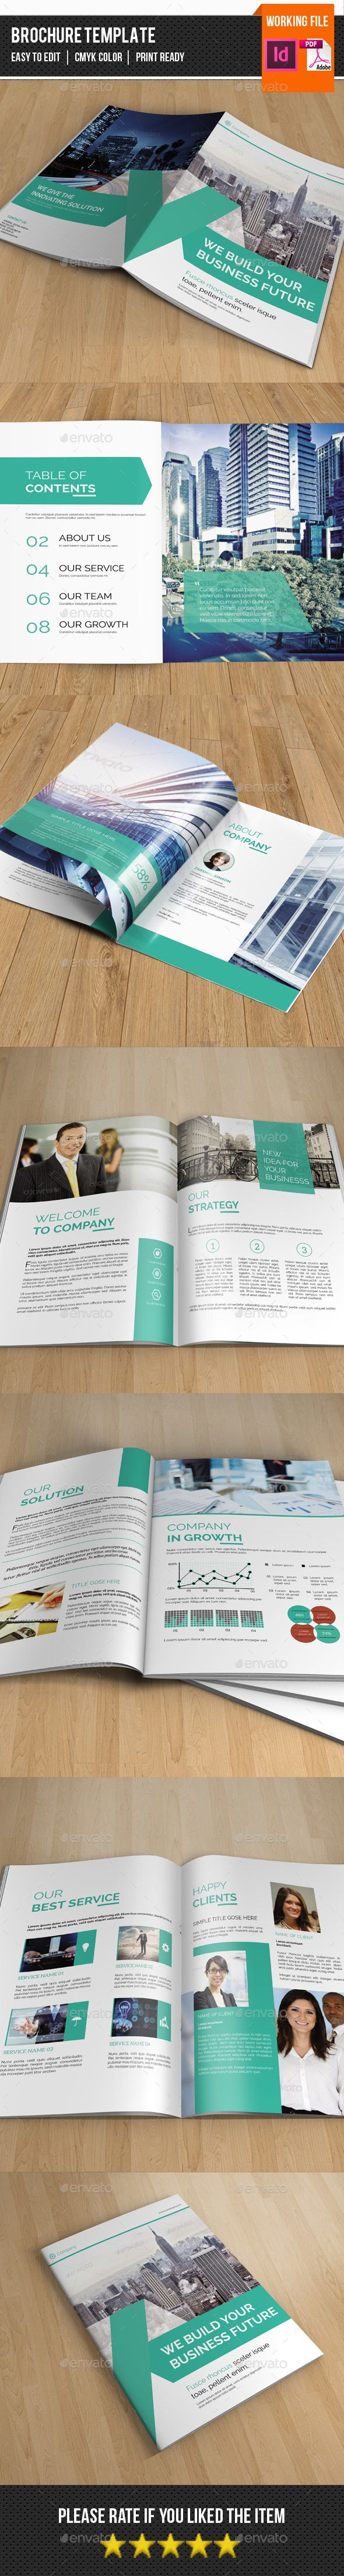 Corporate Brochure Template-V309 - Corporate Brochure Template InDesign INDD. Download here: http://graphicriver.net/item/corporate-brochure-templatev309/13079560?s_rank=1782&ref=yinkira